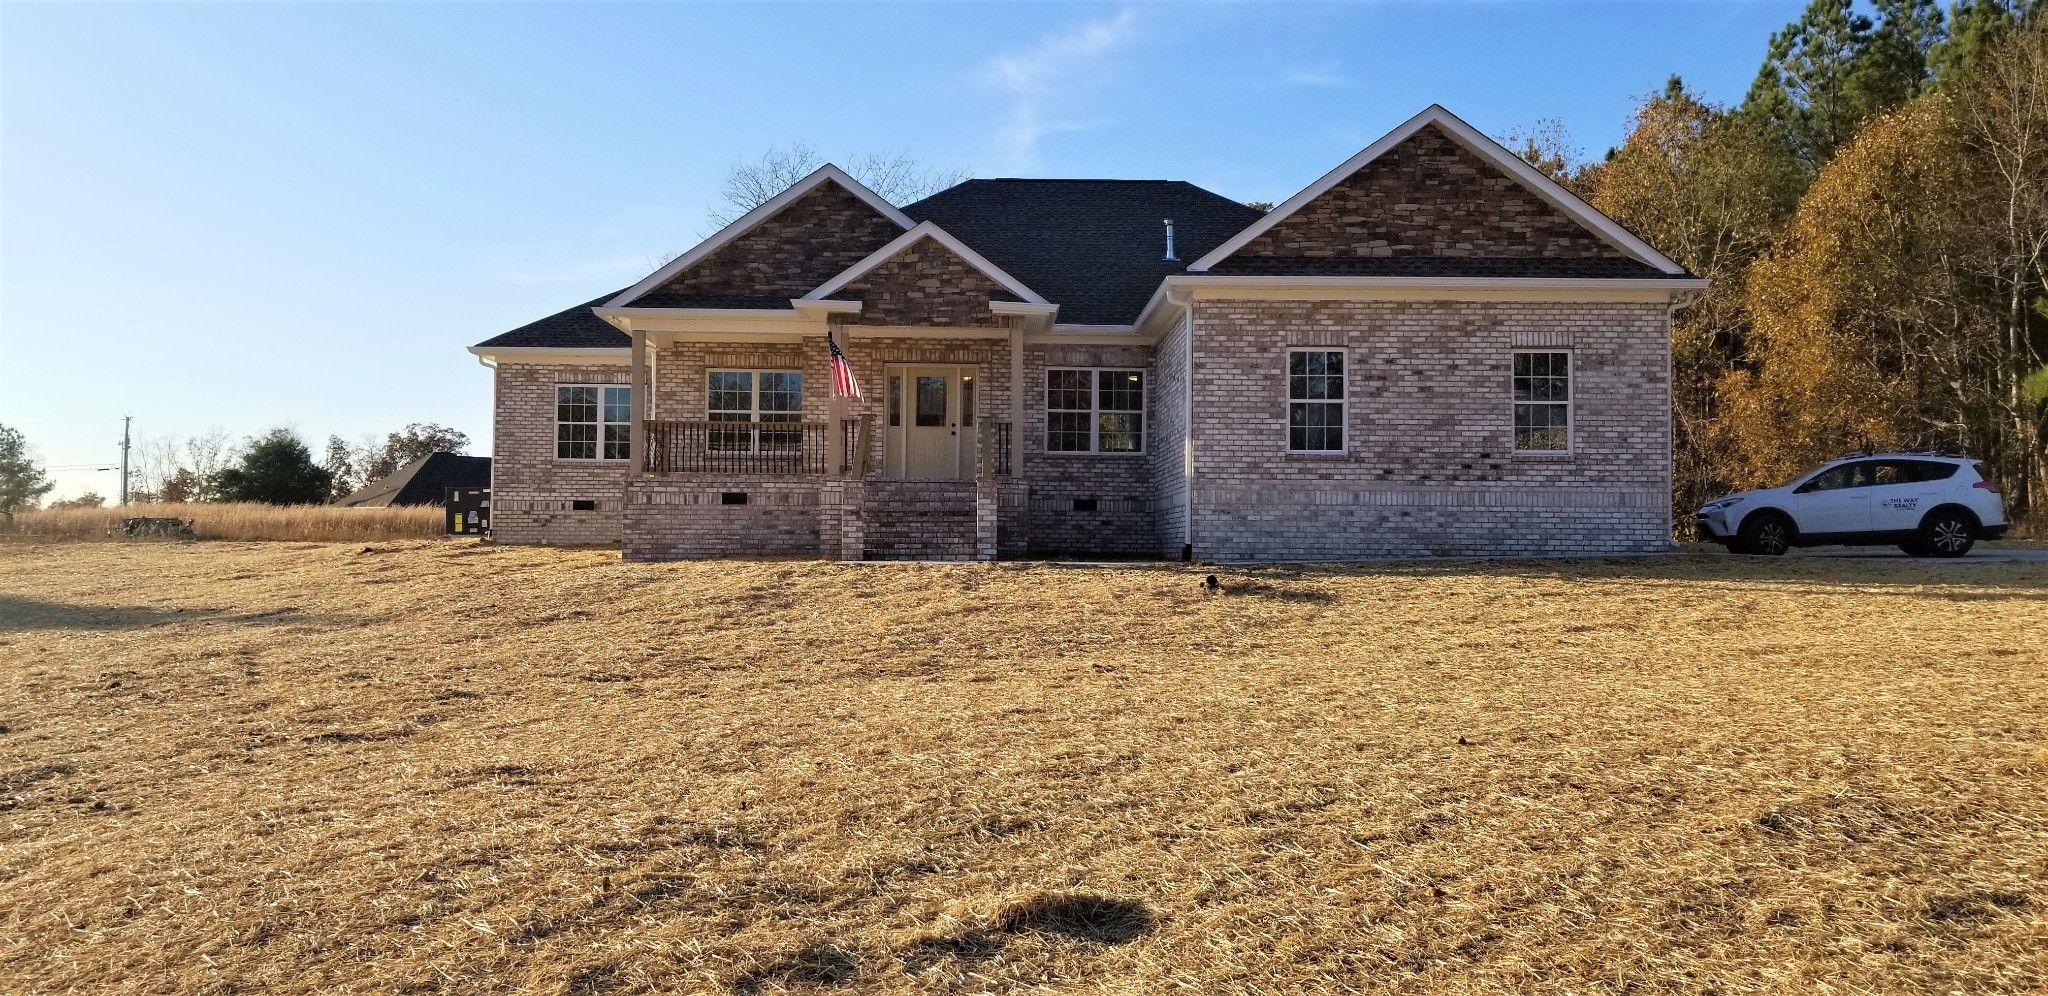 358 Double Eagle Dr, Summertown, TN 38483 - Summertown, TN real estate listing